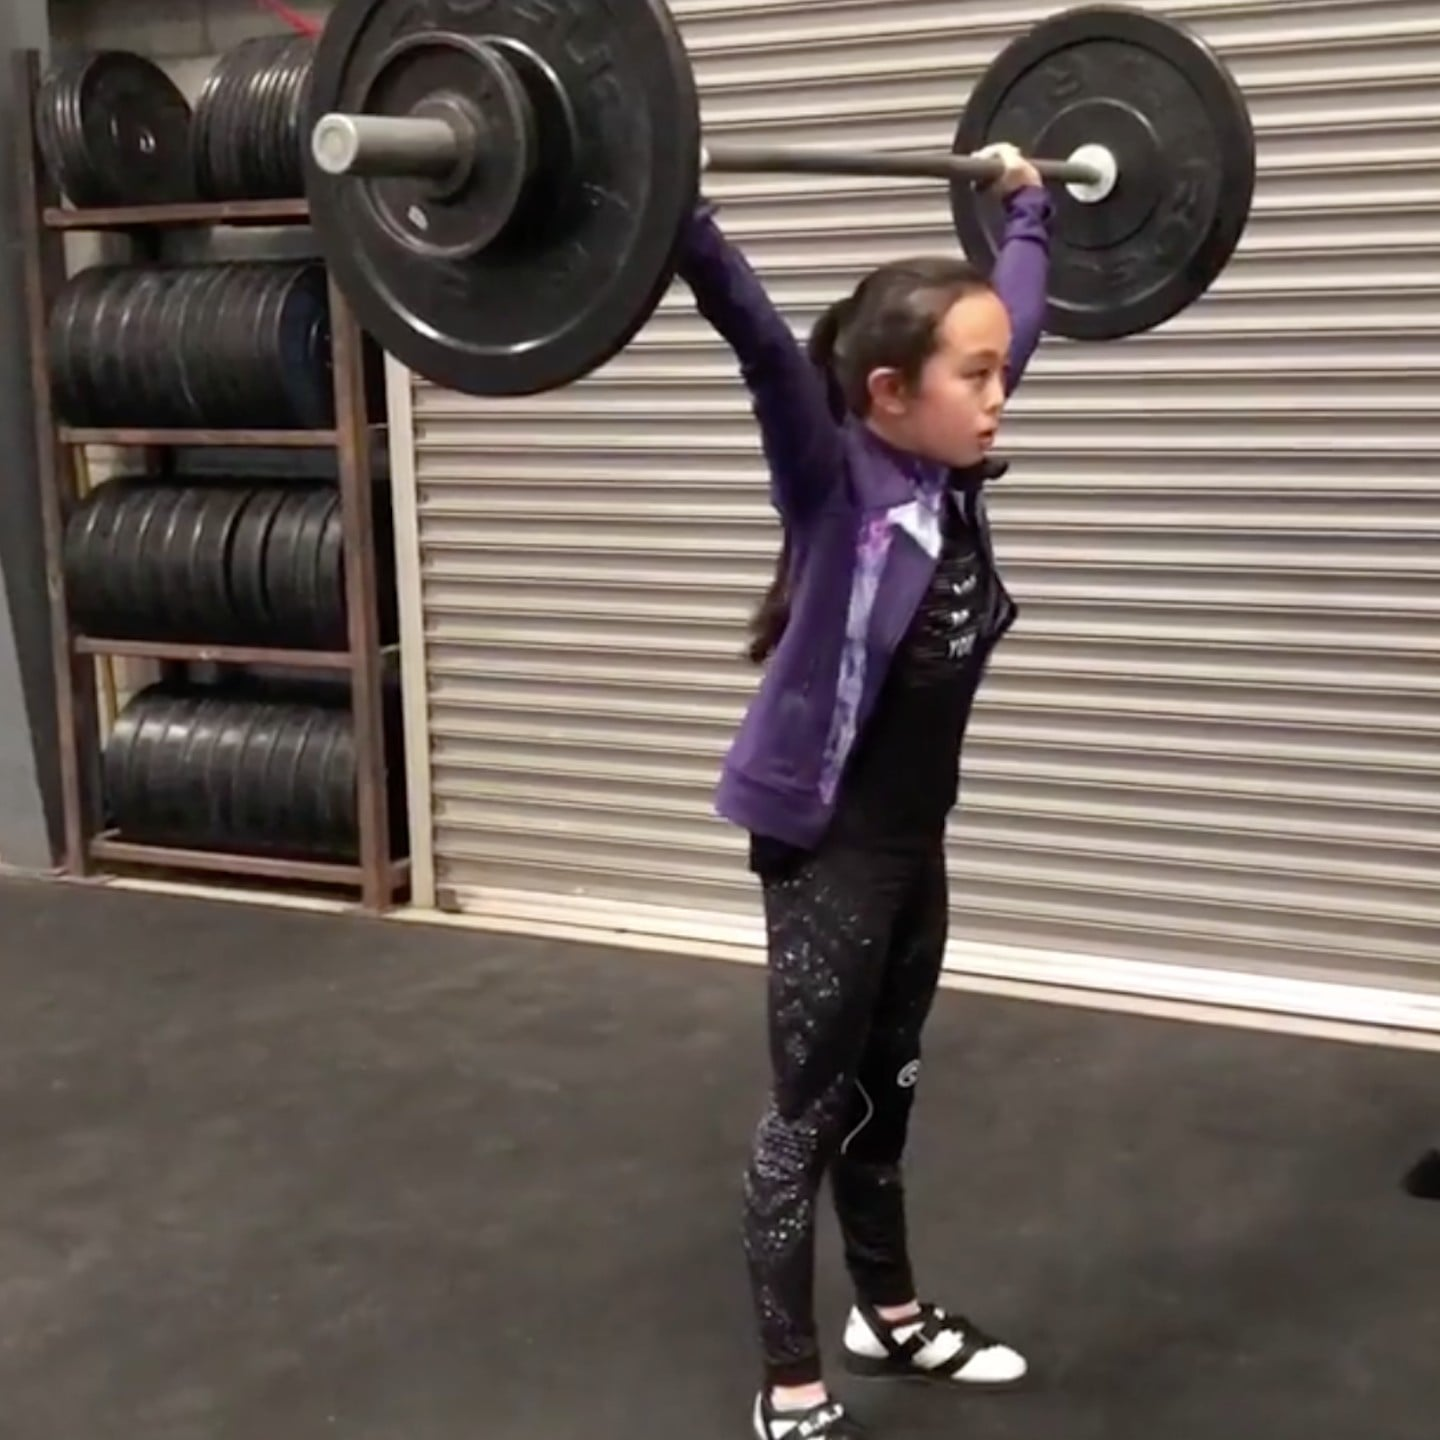 Who Is Elle Hatamiya Young Weightlifting Girl Popsugar Fitness